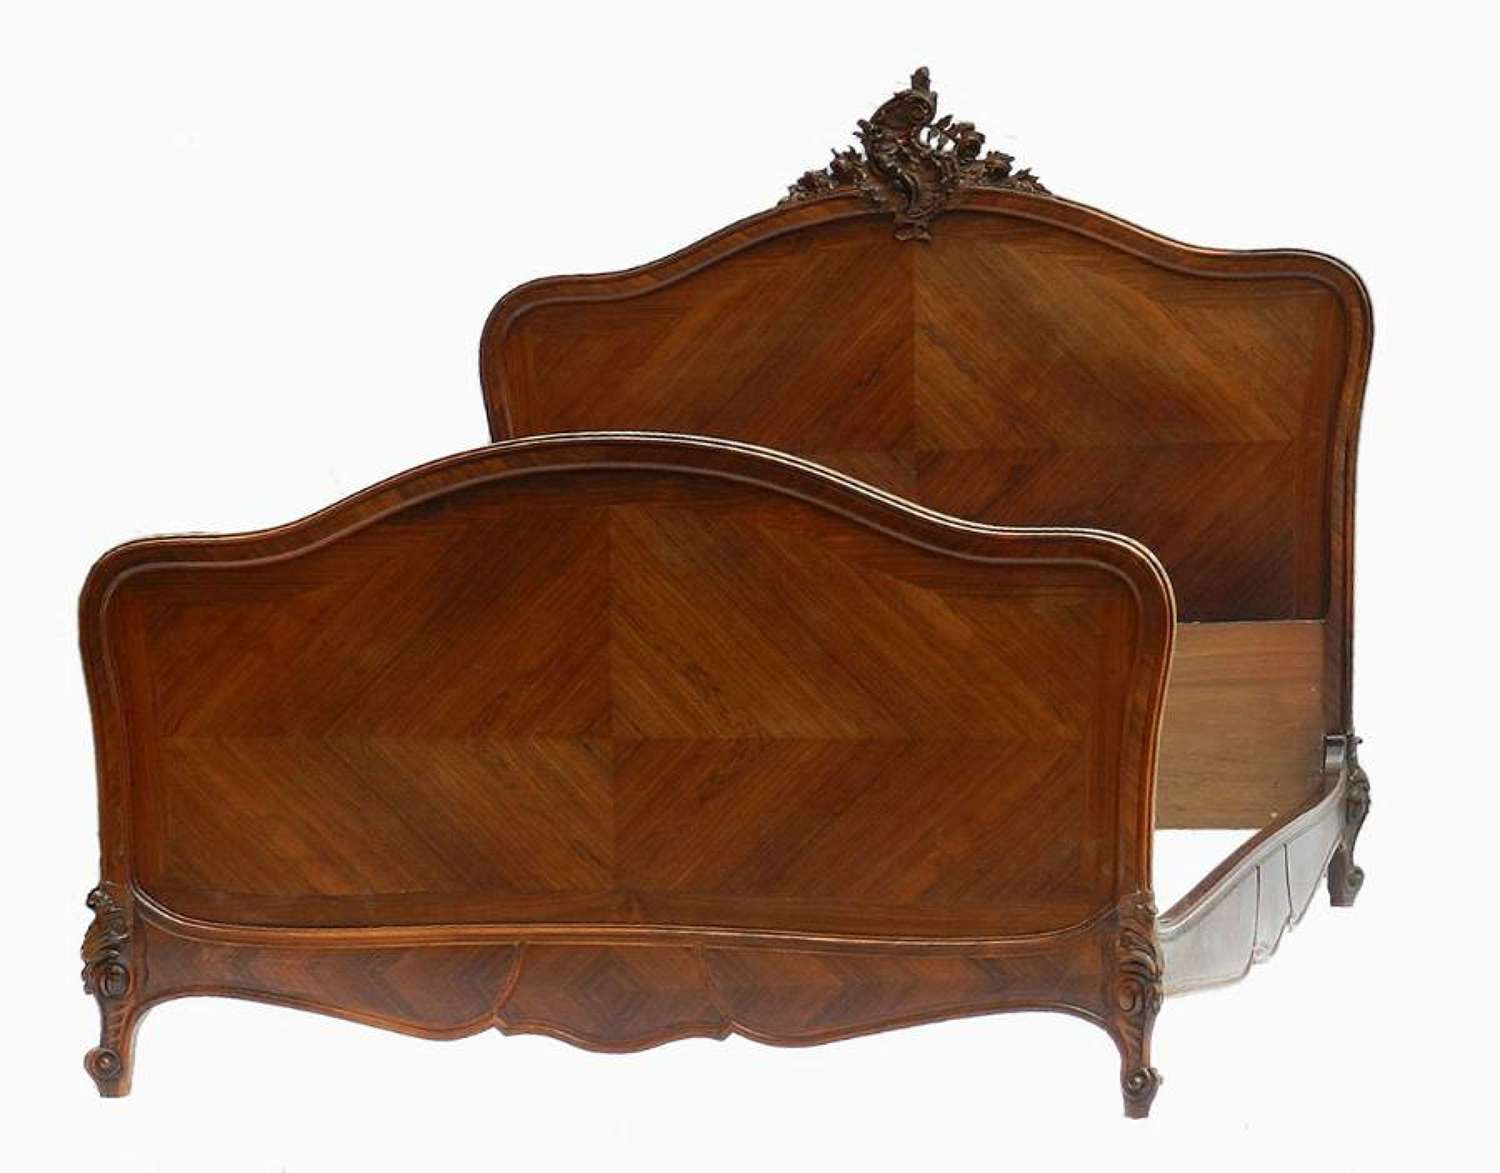 C19 Rococo French Bed + Base UK King size US Queen